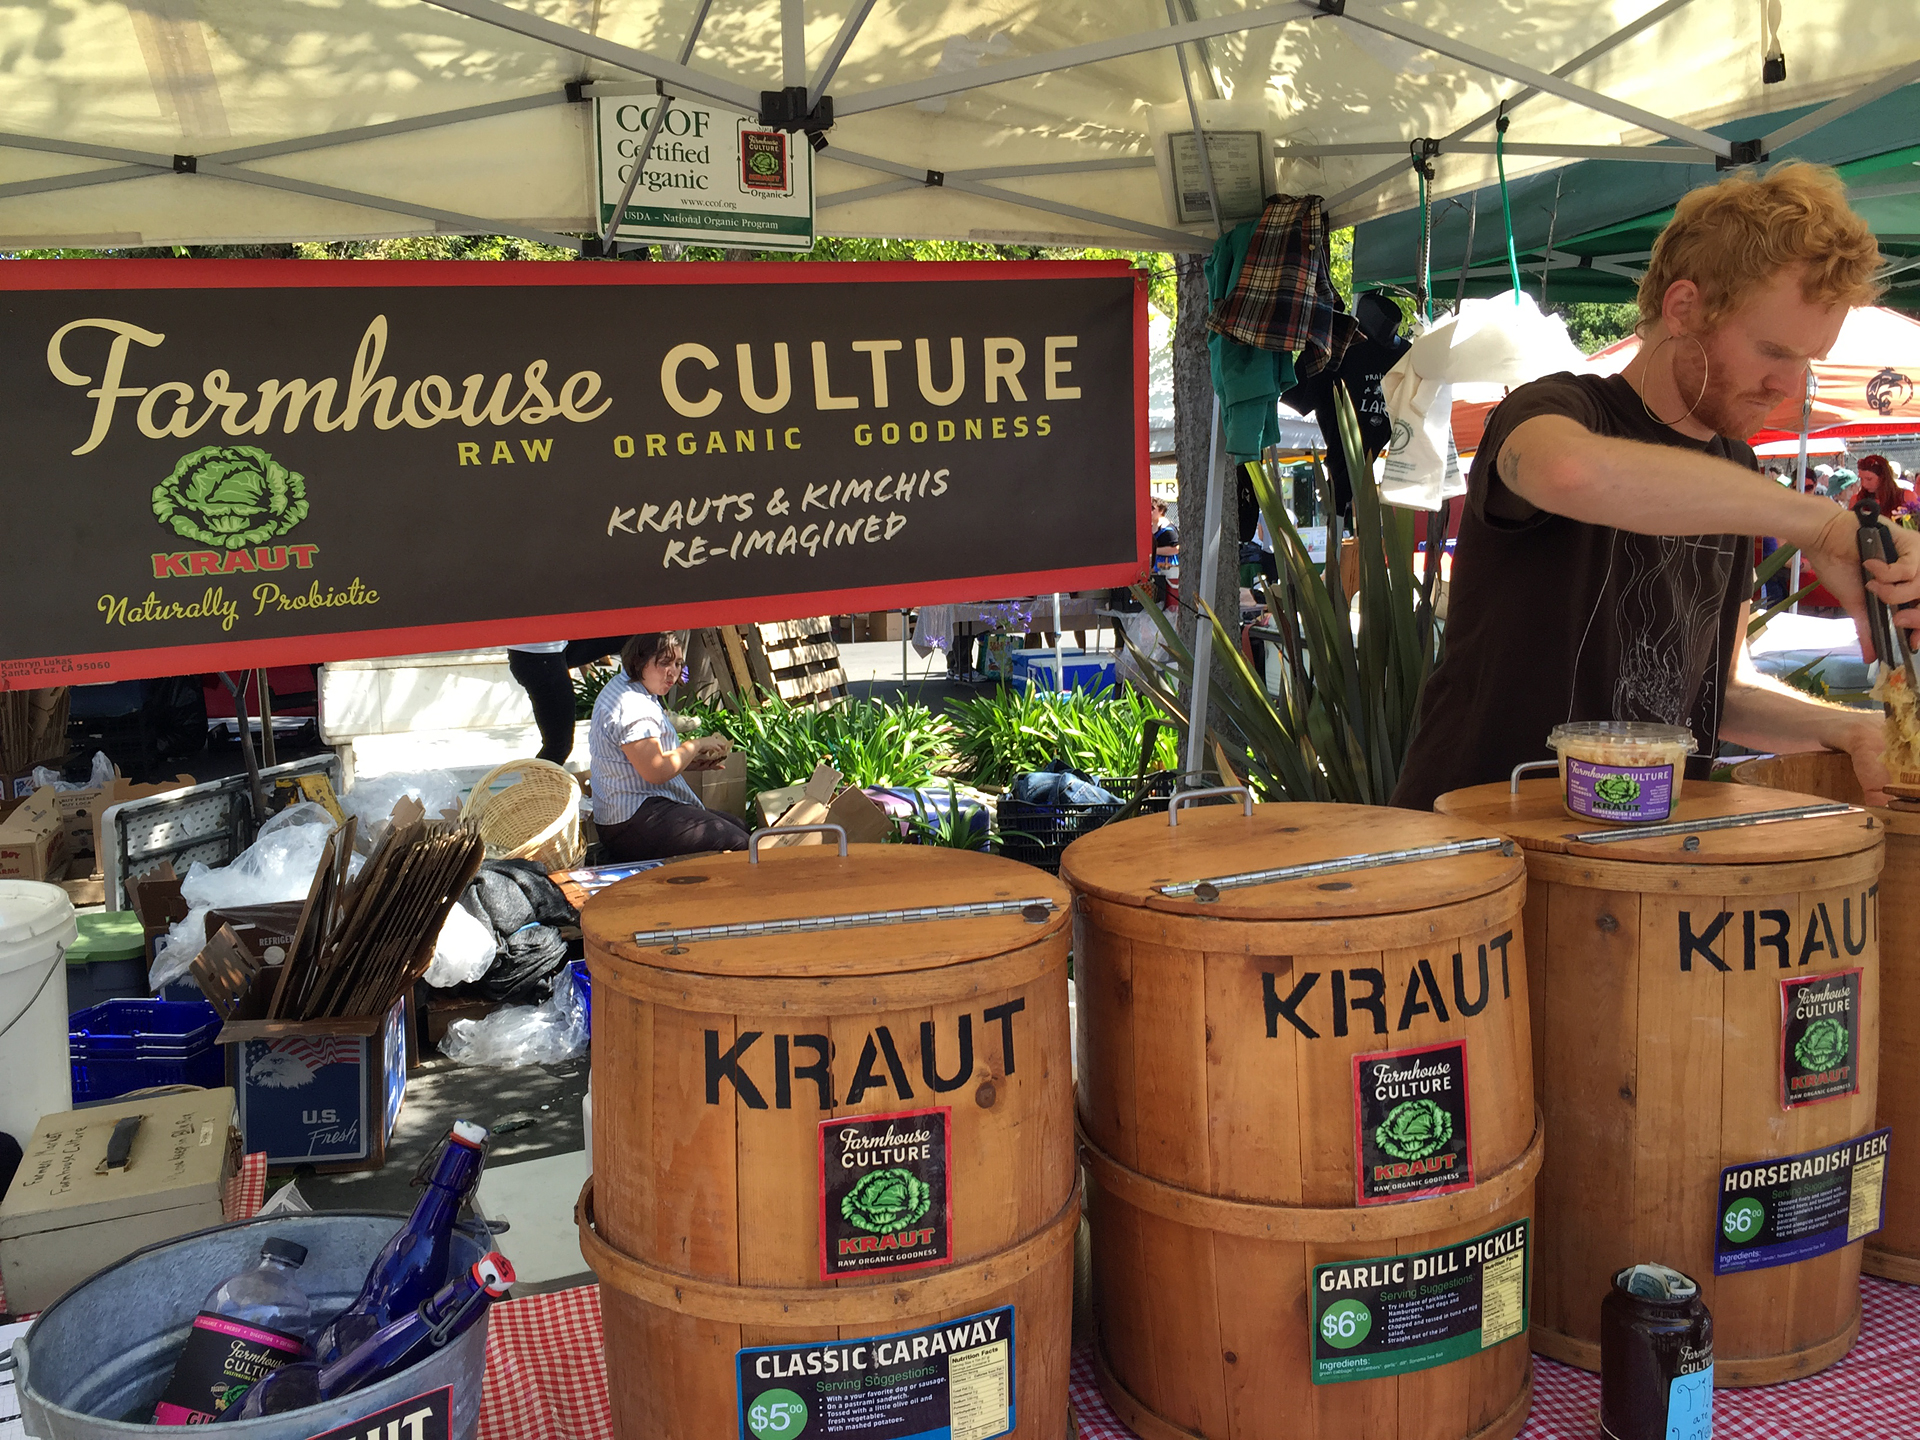 Farmhouse Culture of Santa Cruz at the Temescal Farmers' Market in Oakland